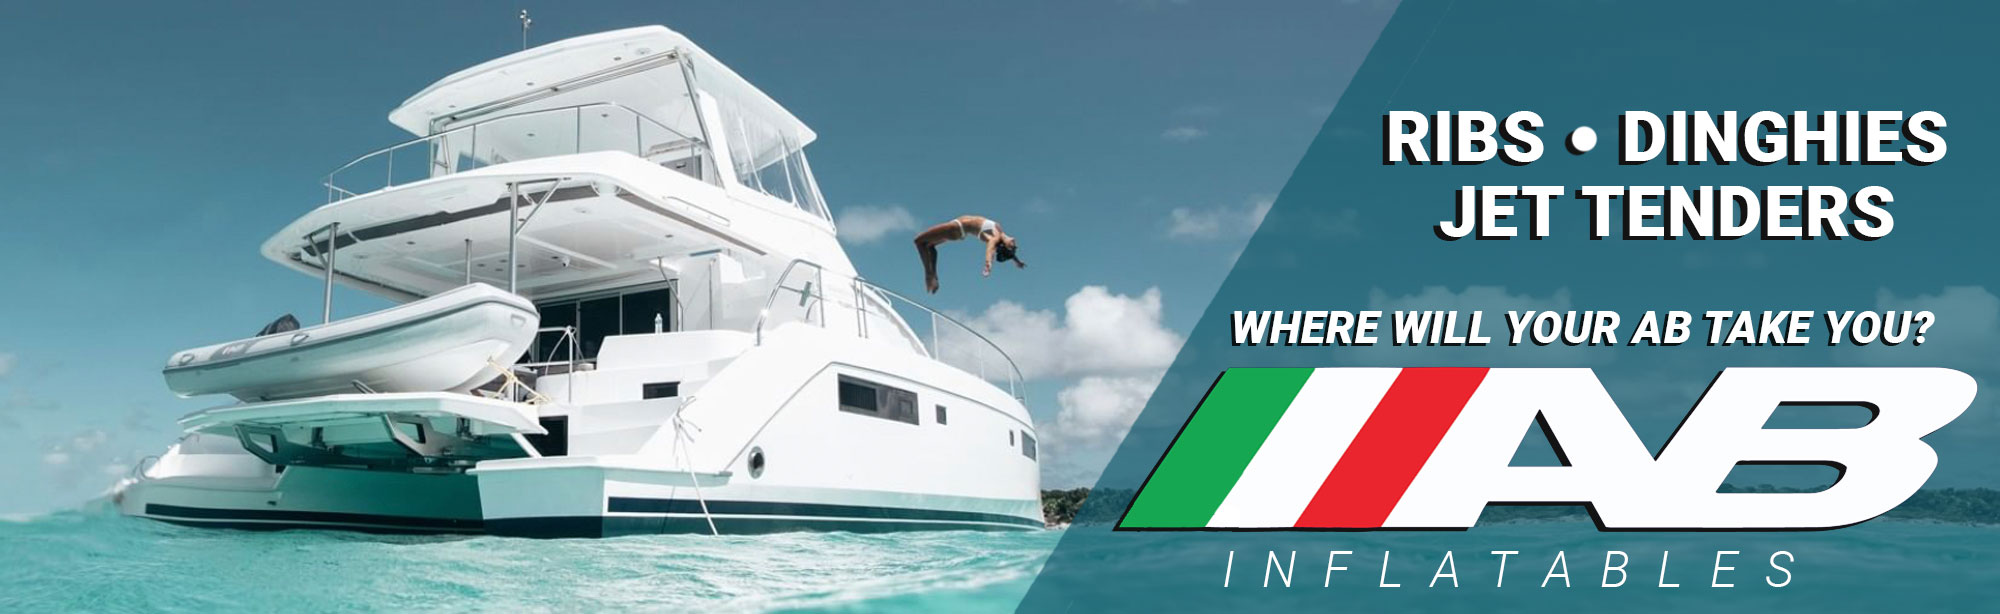 AB Inflatables are designed for even the most savvy boater.  Using innovation and superior construction, they have pleased every owner so far.